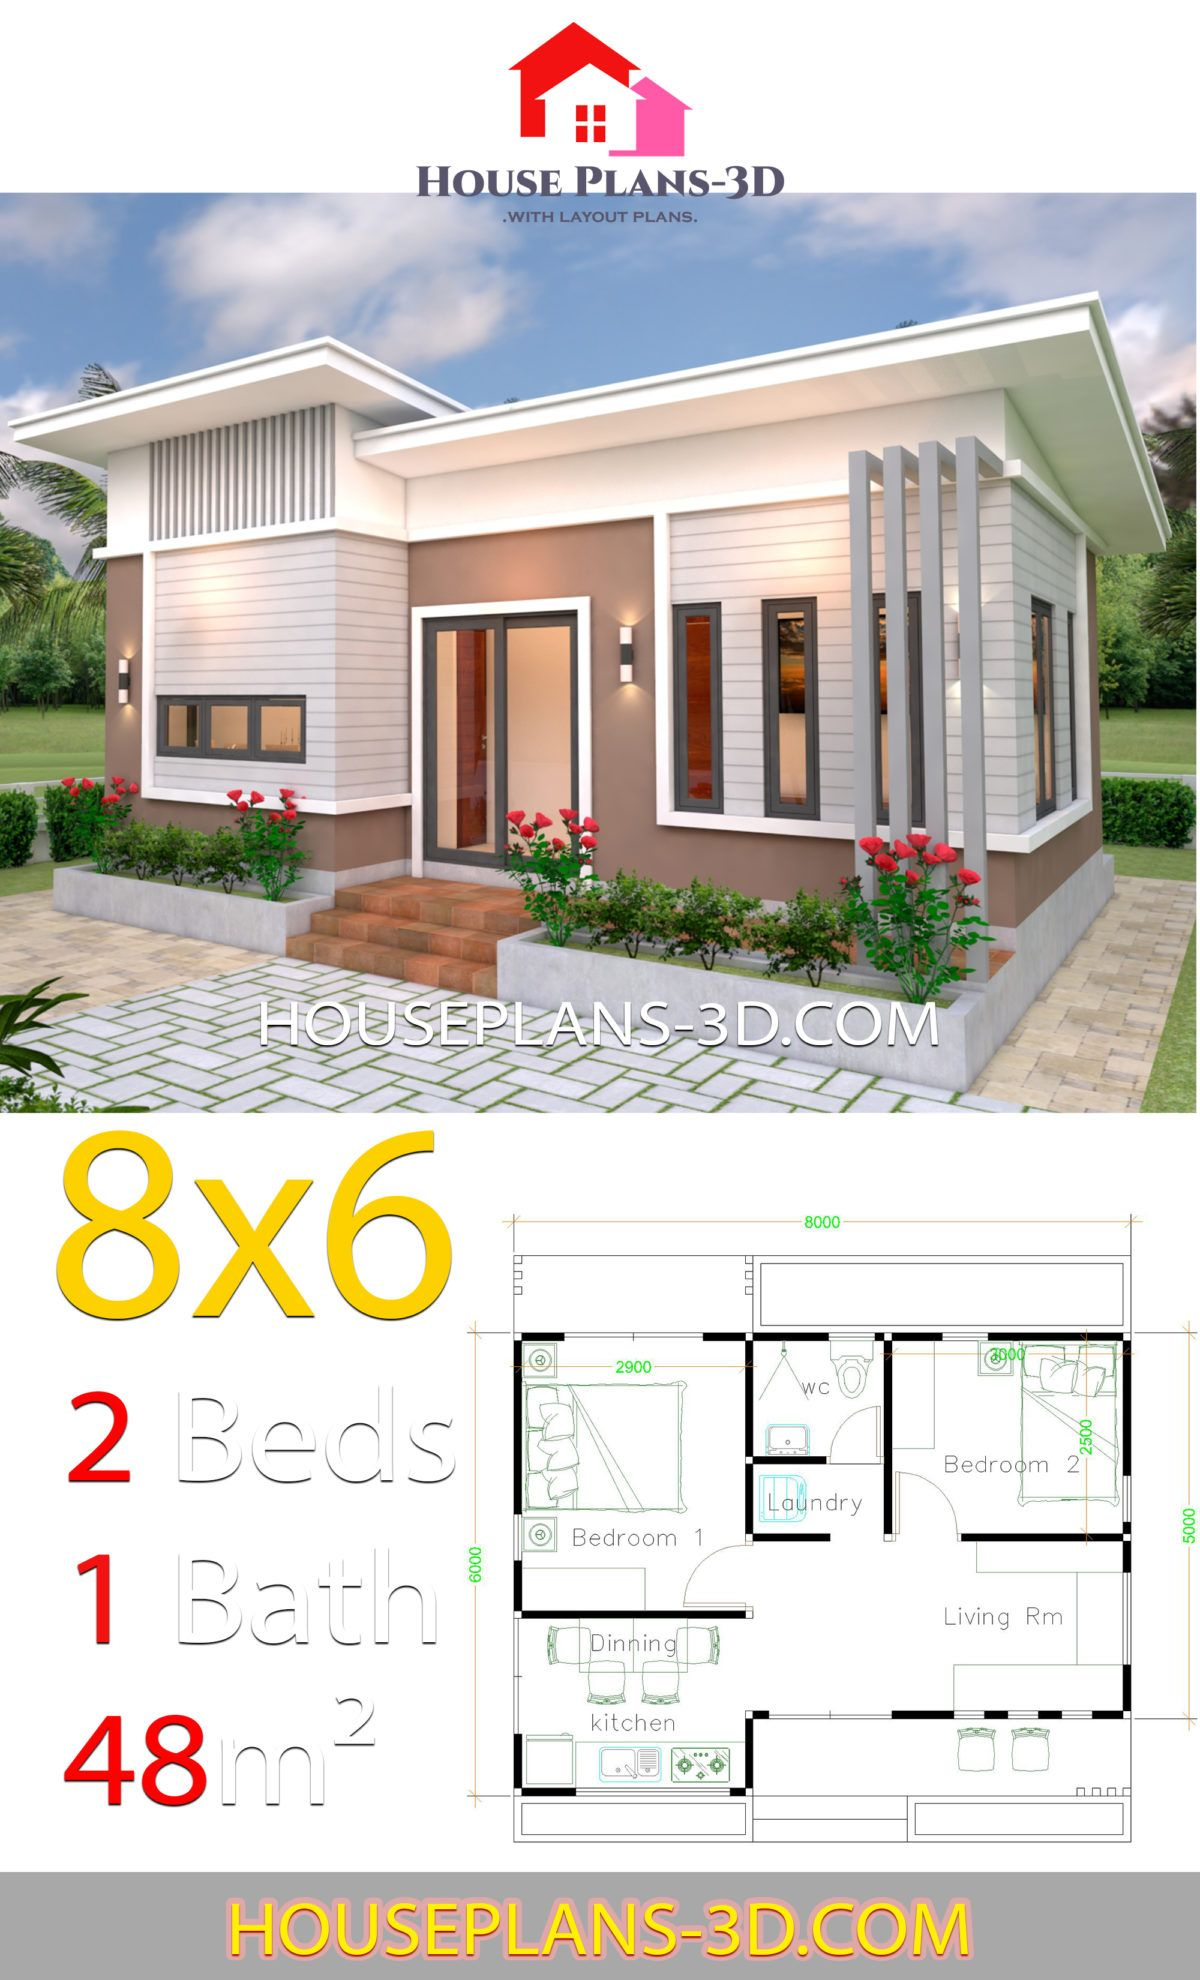 House Plans 8x6 With 2 Bedrooms Slope Roof House Plans 3d Simple House Plans House Plans Small House Plans